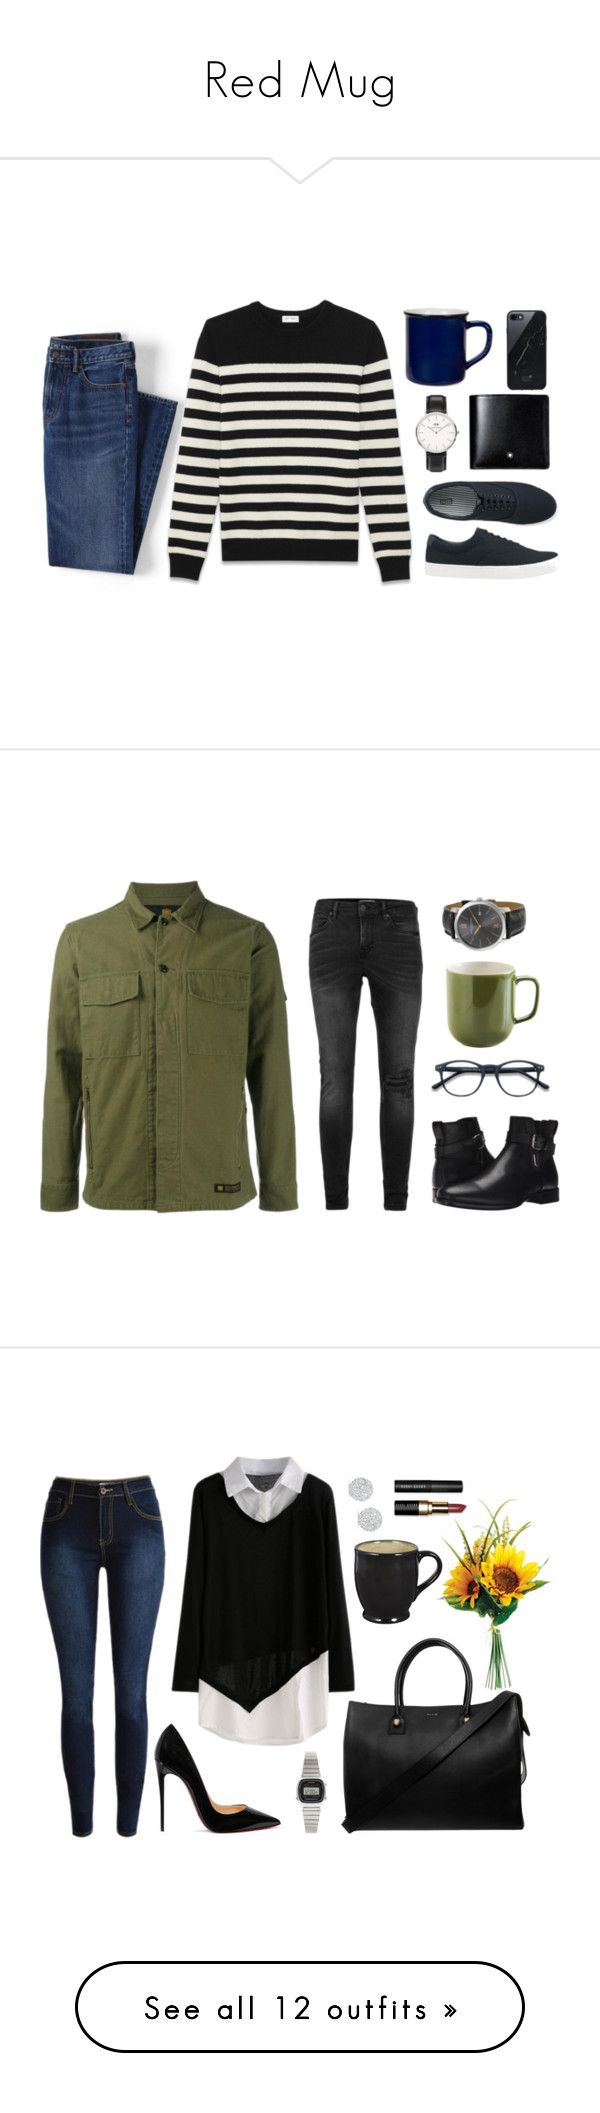 """""""Red Mug"""" by yasminferrare ❤ liked on Polyvore featuring Lands' End, Yves Saint Laurent, Uniqlo, Daniel Wellington, Montblanc, Native Union, Drake General Store, Topman, Aquatalia by Marvin K. and Neighborhood"""